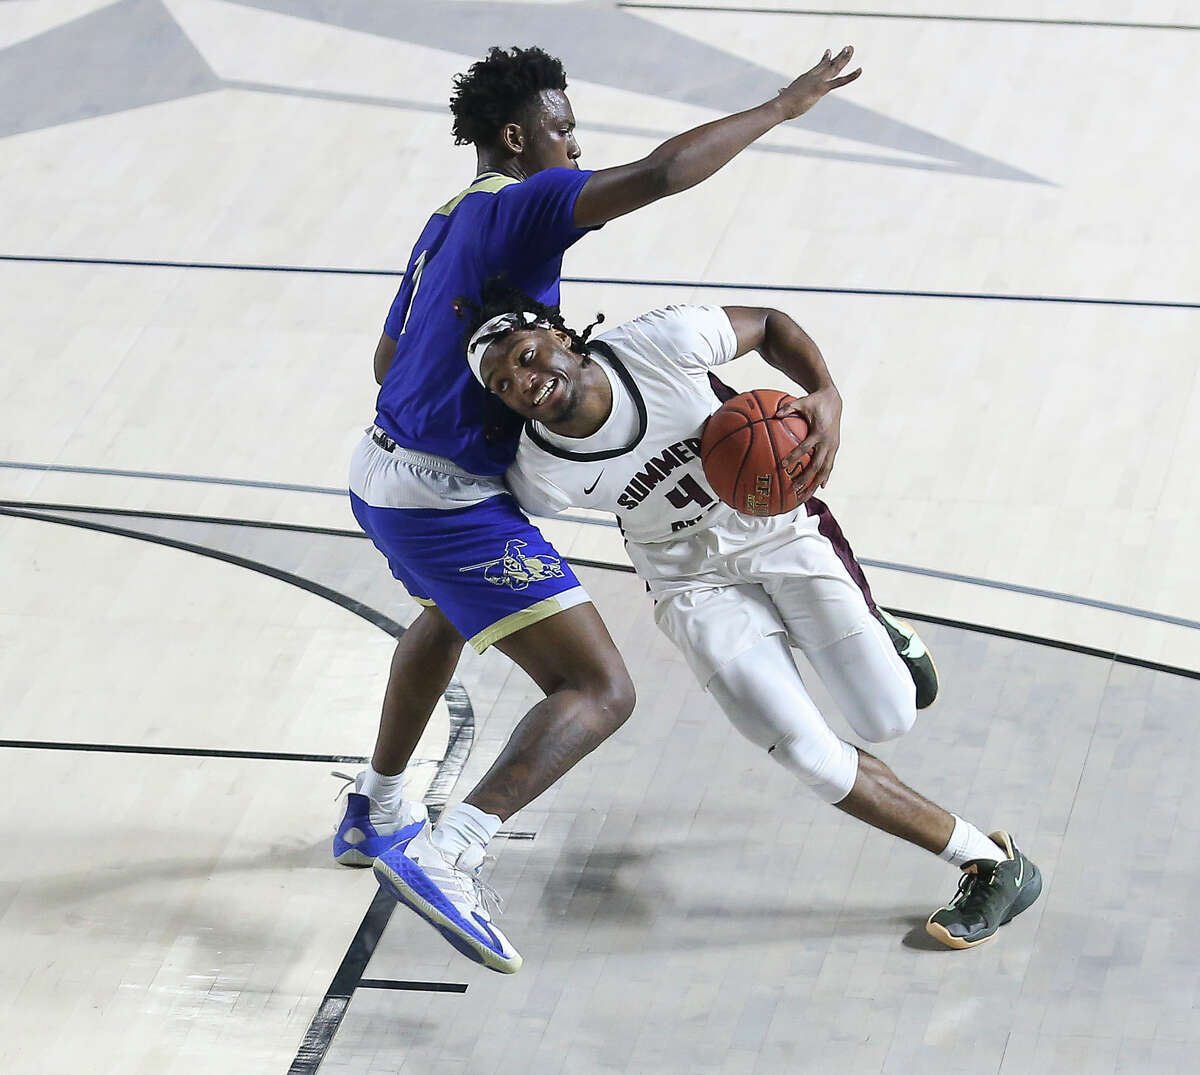 Summer Creek's Amaree Abram (4) is fouled by Elkins' Shane Bell (1) while dribbling toward the basket during the third quarter of a UIL 6A Region III Boys Basketball Playoffs Semifinal game Tuesday, March 2, 2021, at Delmar Fieldhouse in Houston.